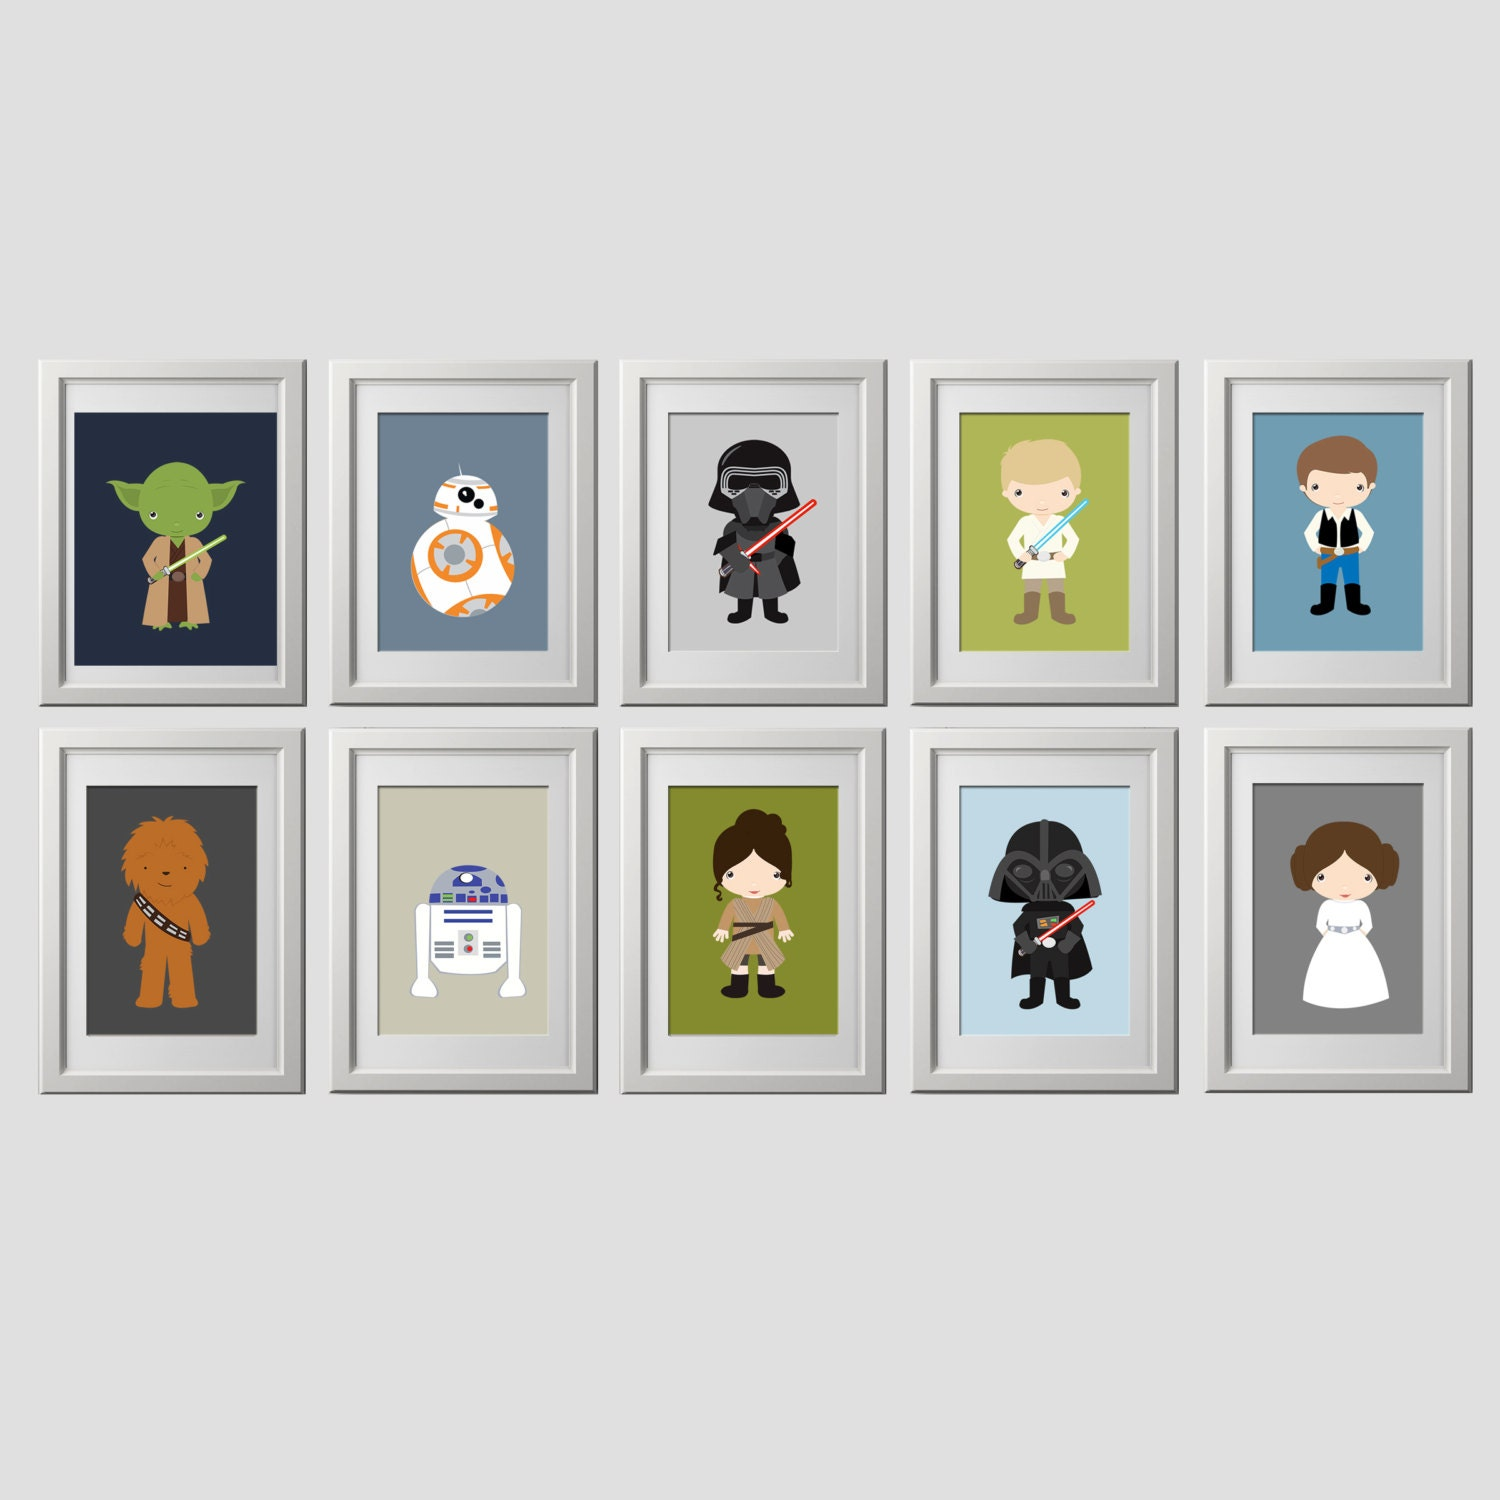 star wars wall art prints set of 10 5x7 inch prints. Black Bedroom Furniture Sets. Home Design Ideas